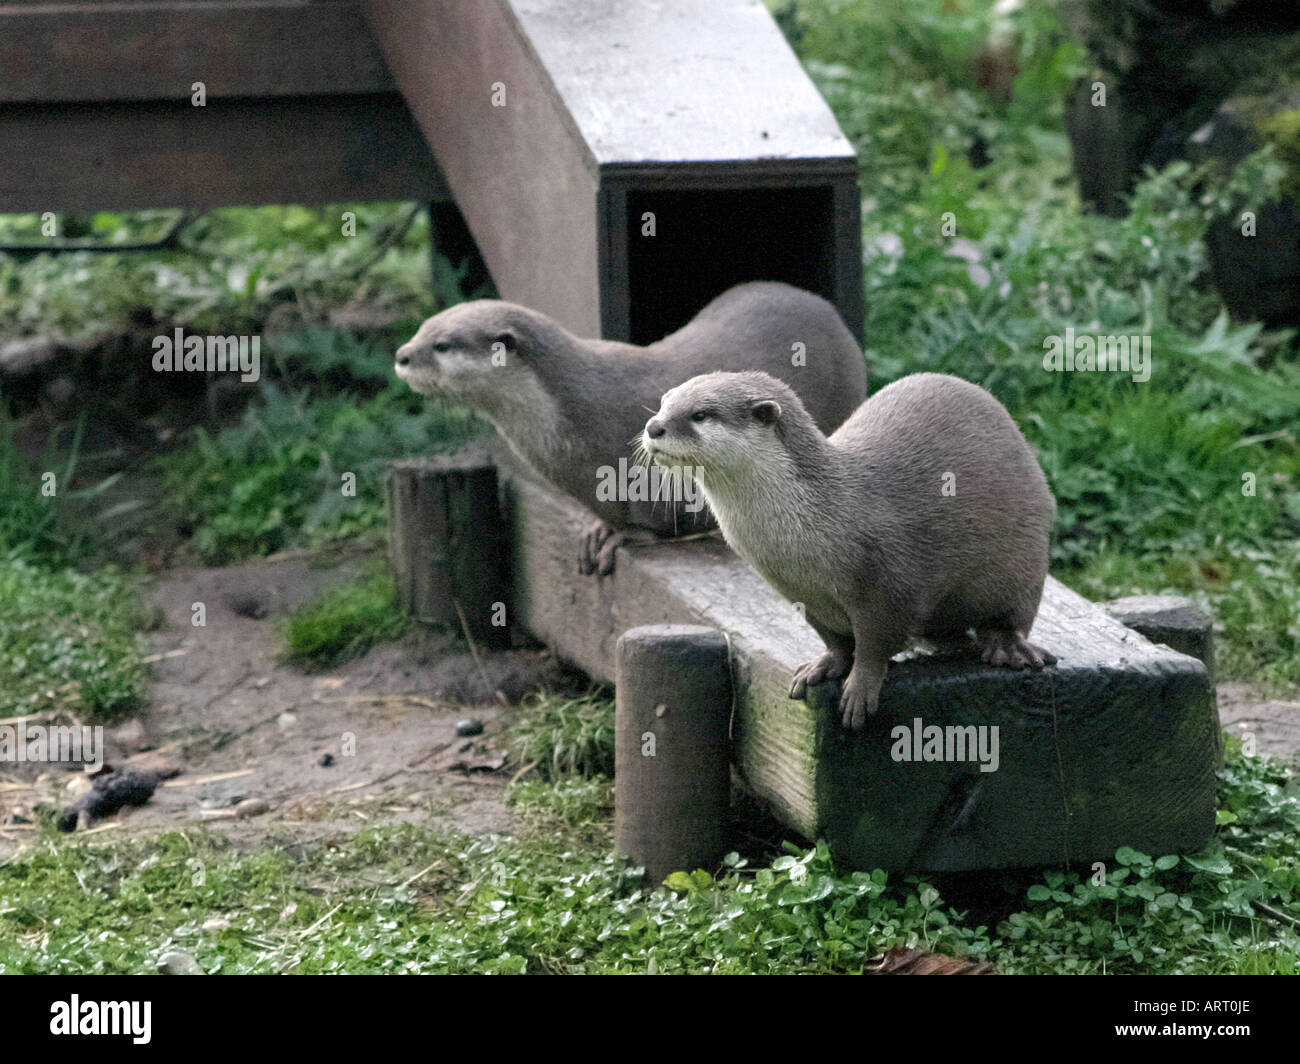 Two otters by their holt. - Stock Image